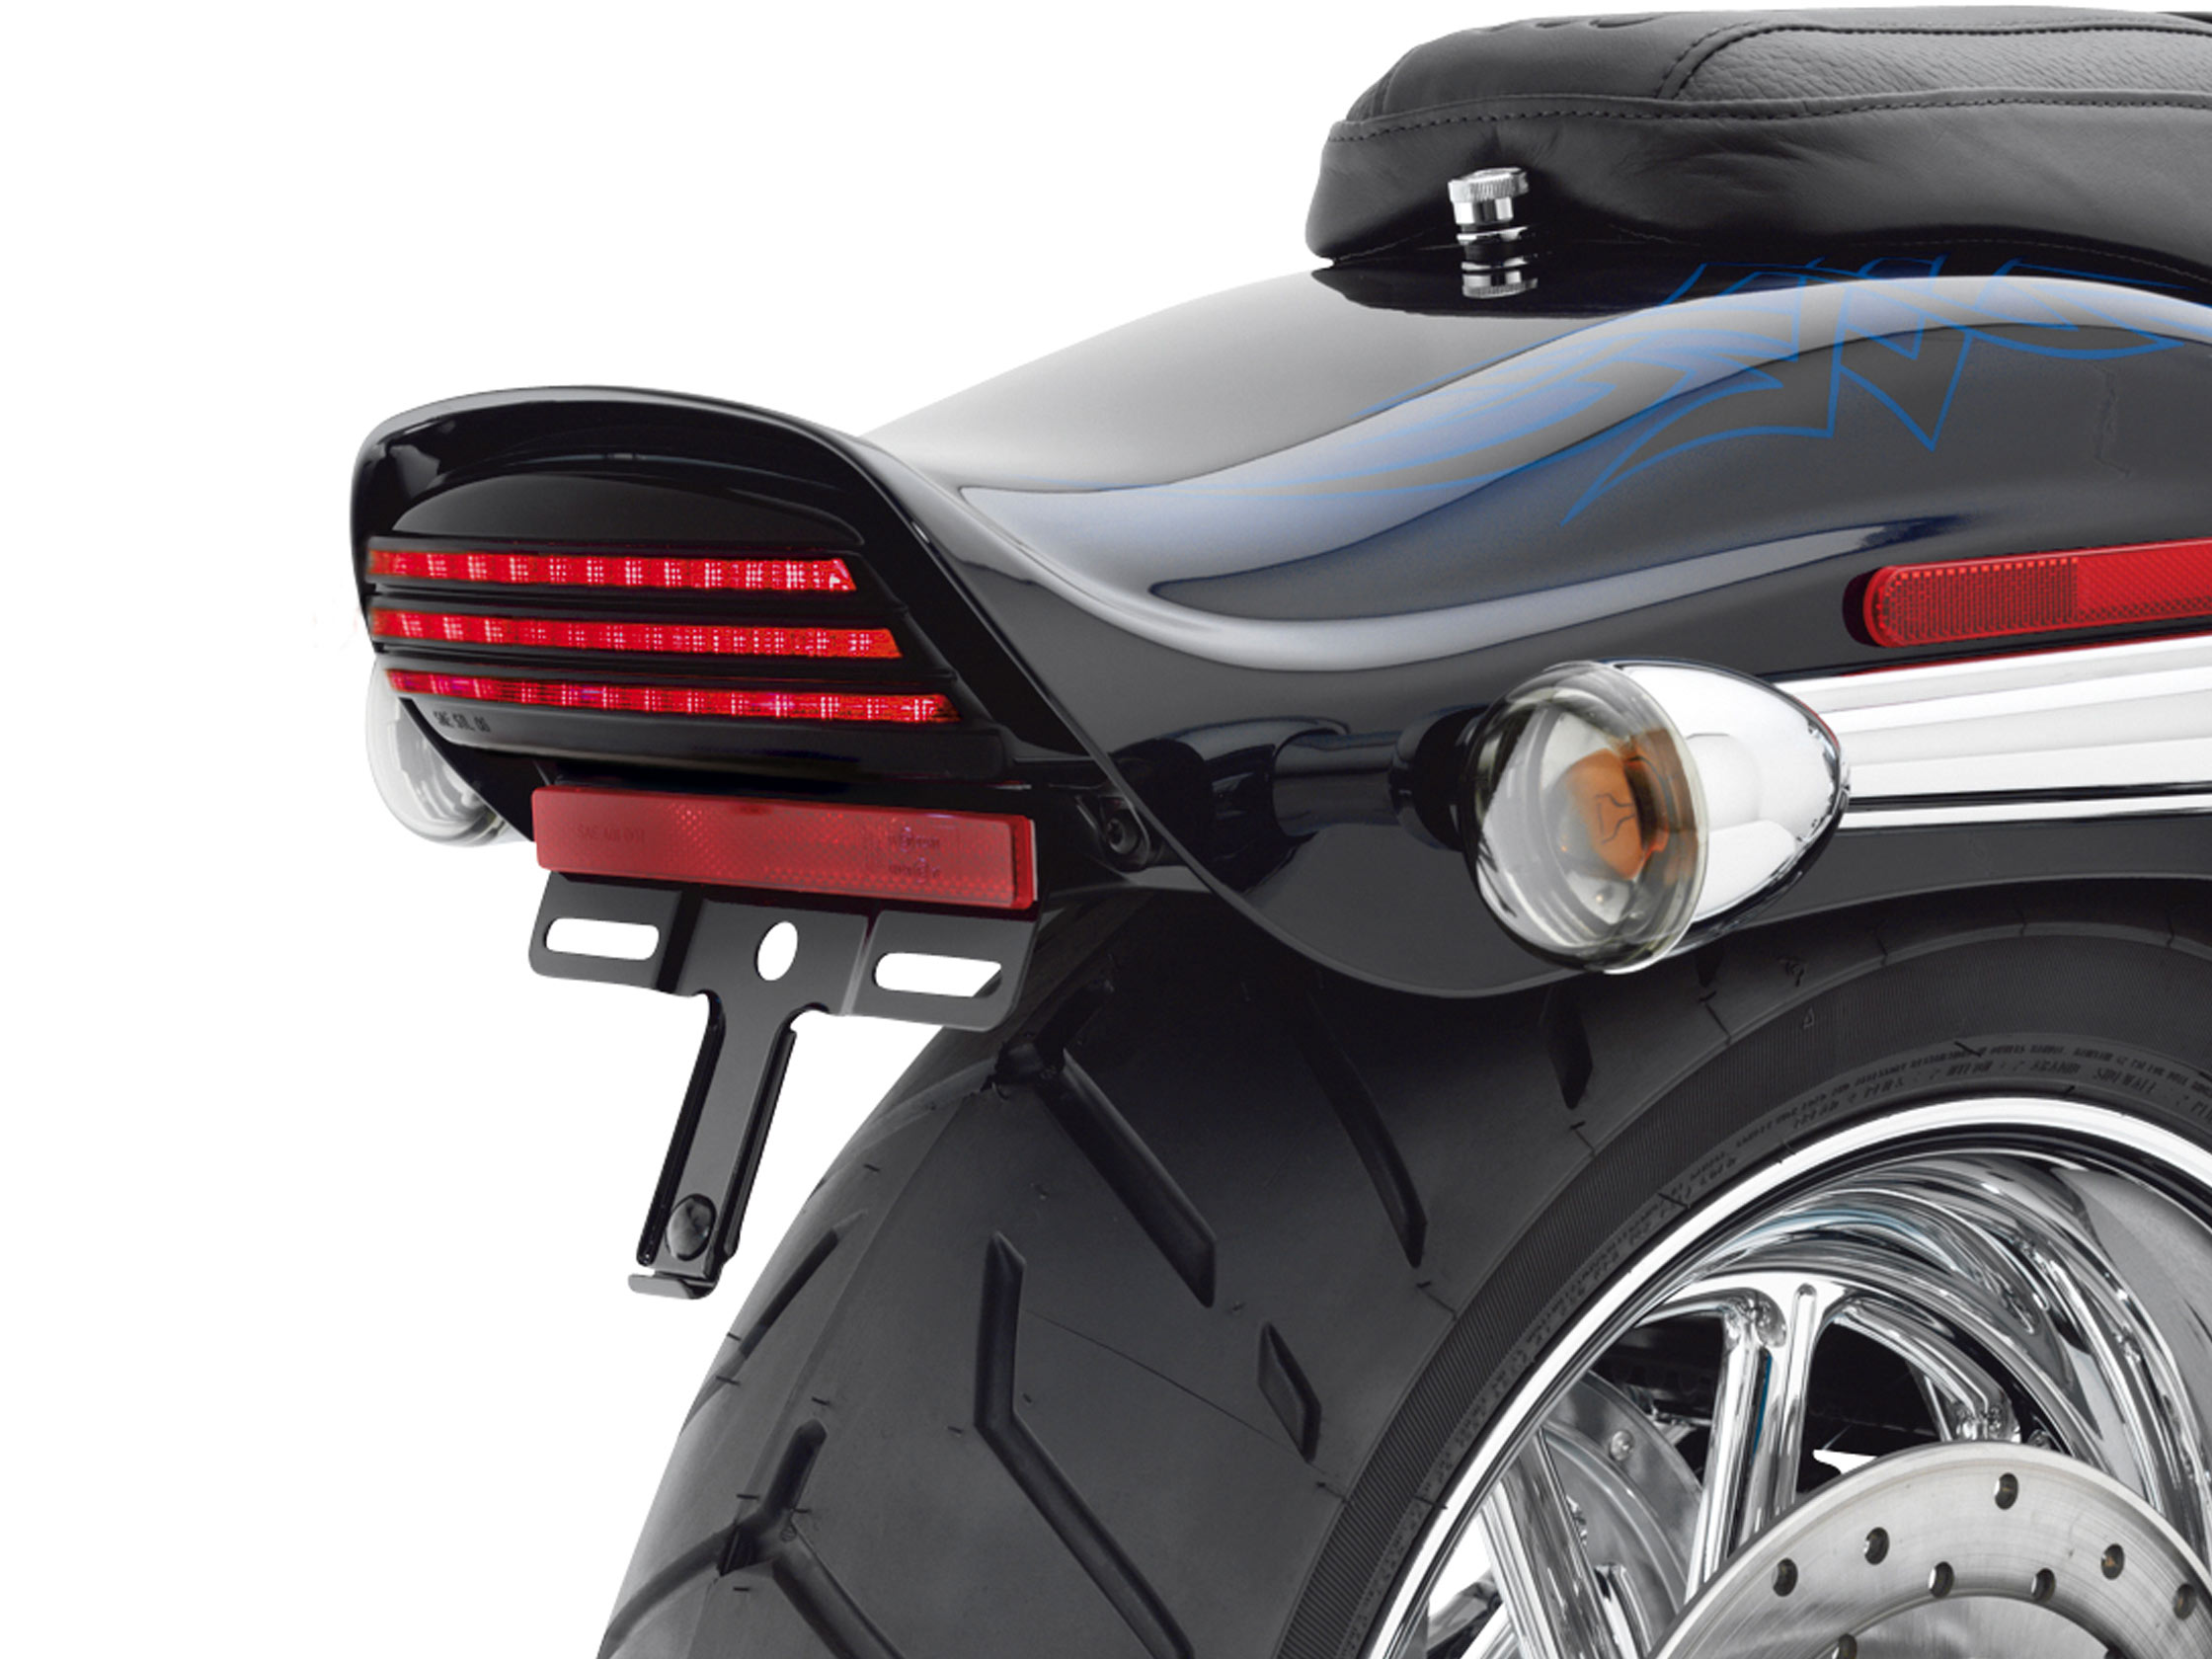 Led tri bar taillight rear light harley davidson fxst fxstb fxstc led tri bar rear tail lamp kit harley softail mozeypictures Images